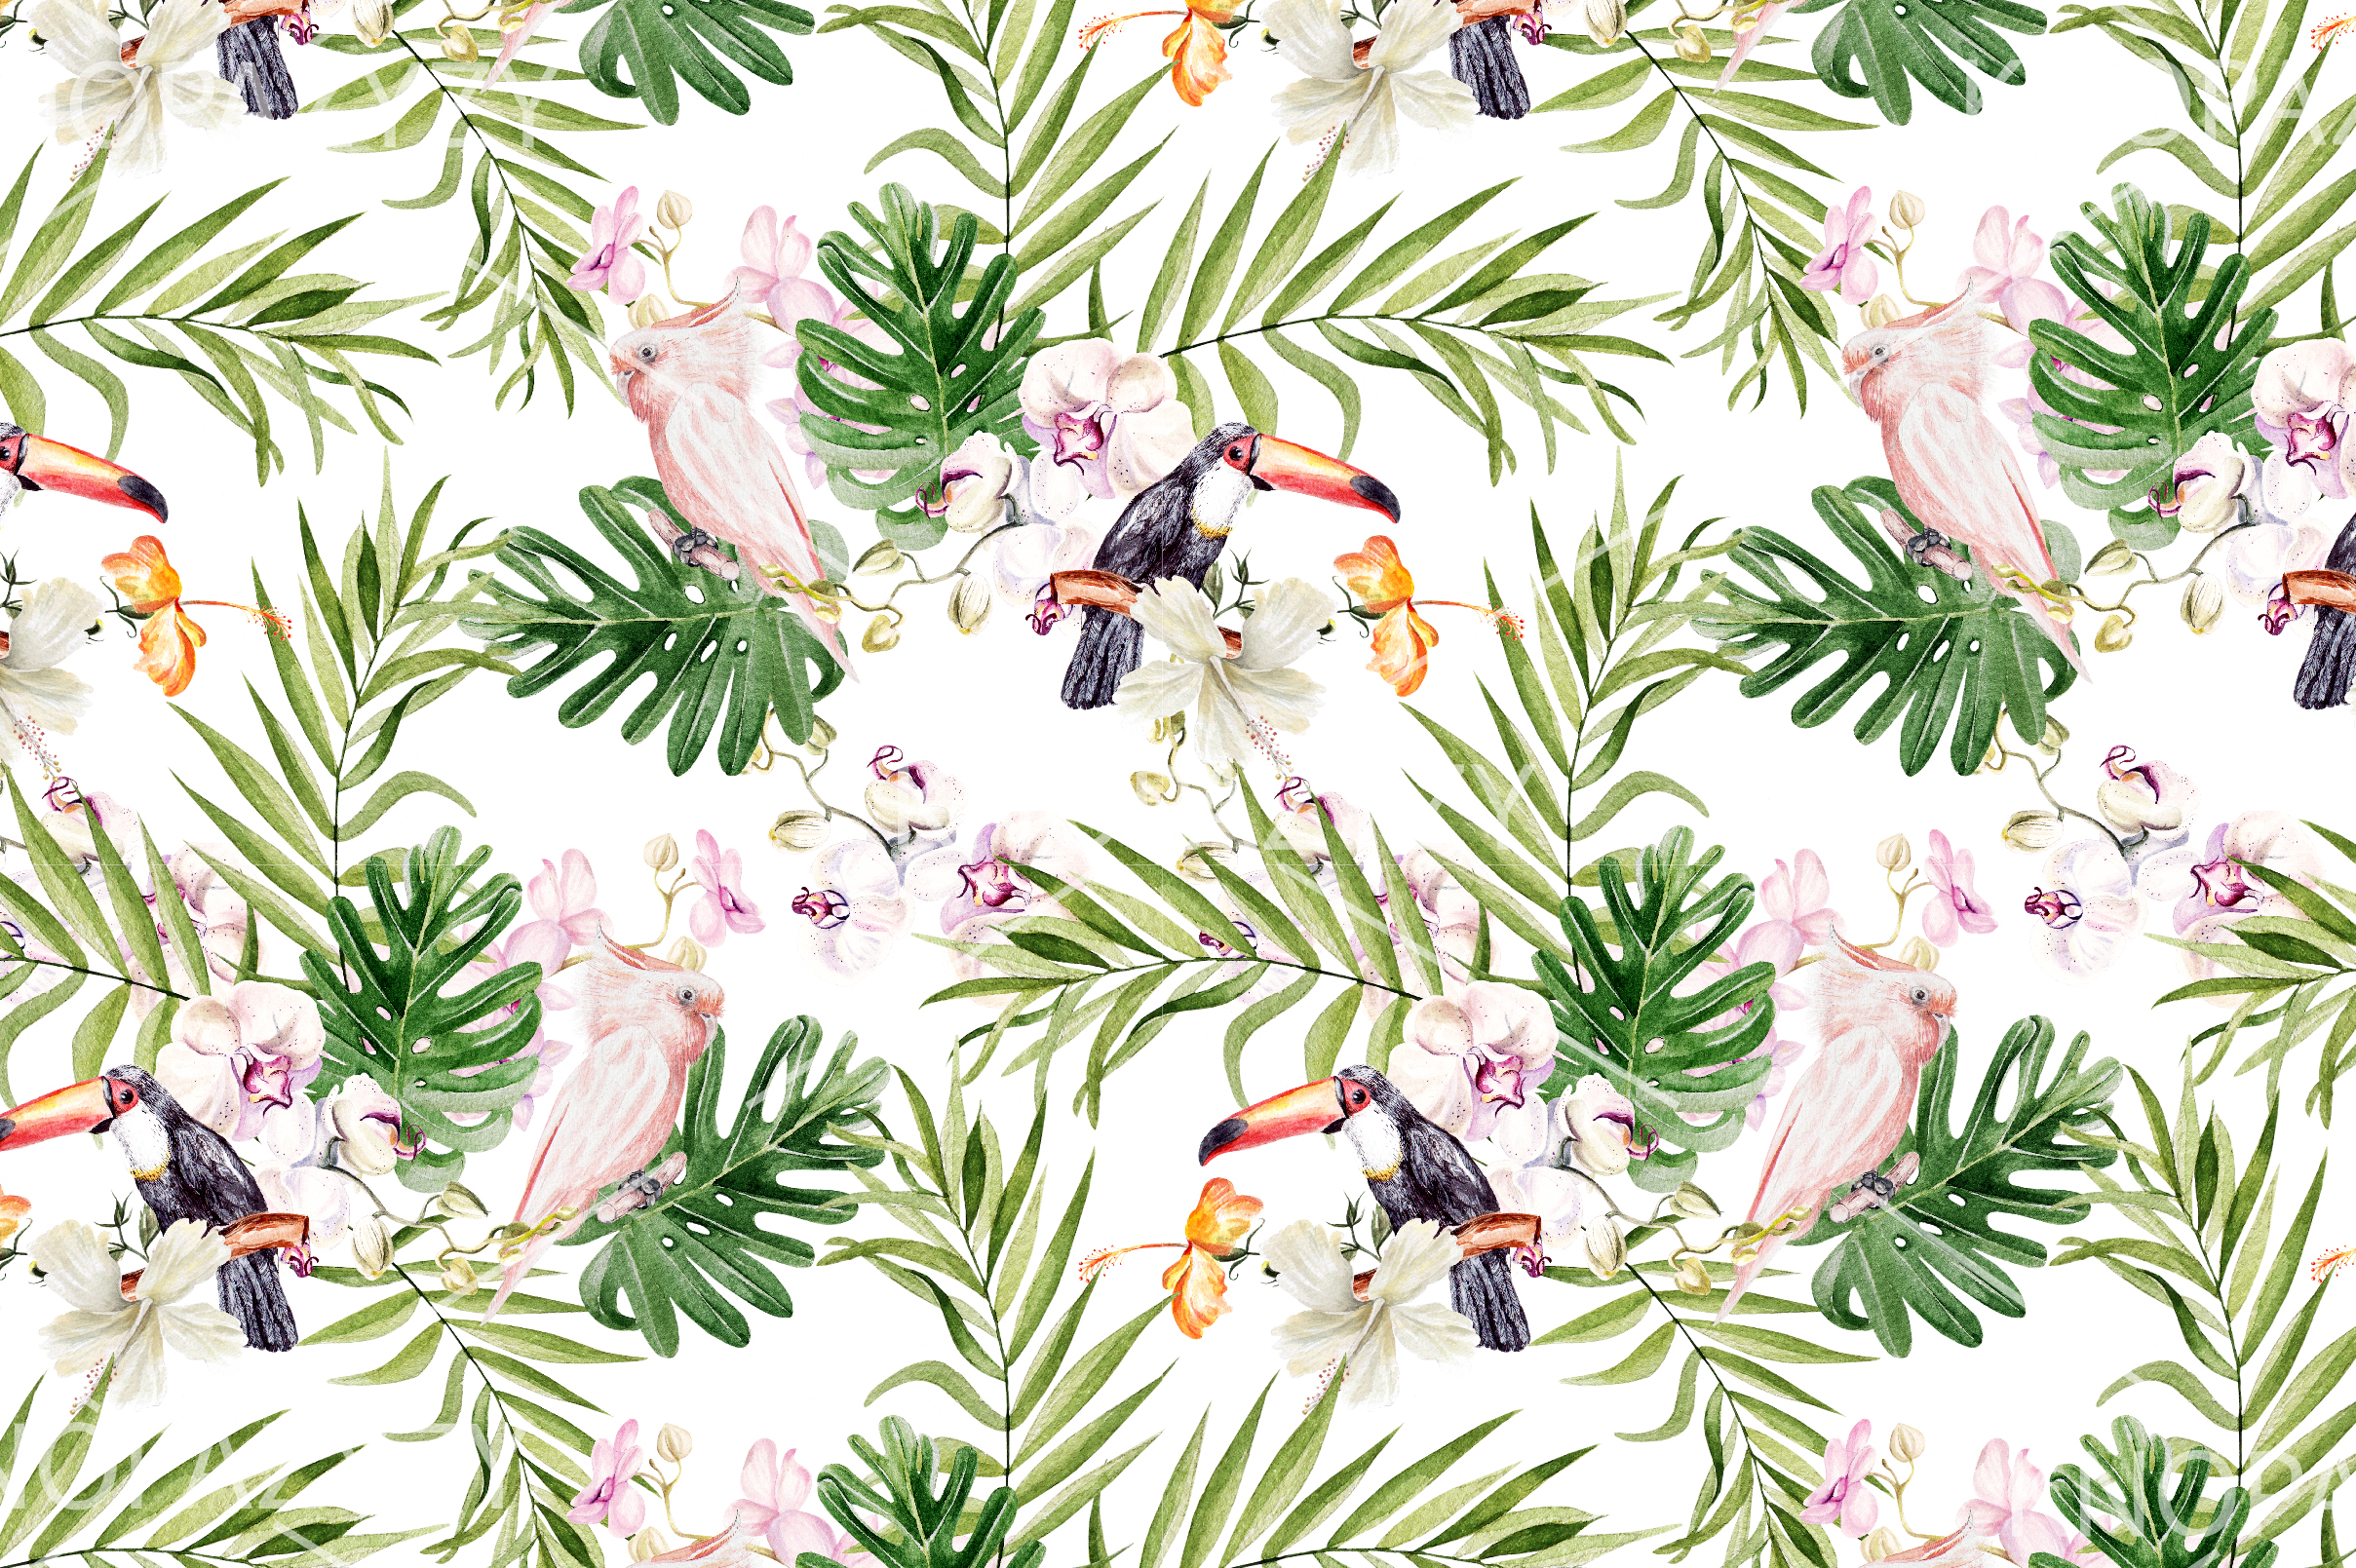 16 Hand Drawn Watercolor Pattern example image 5